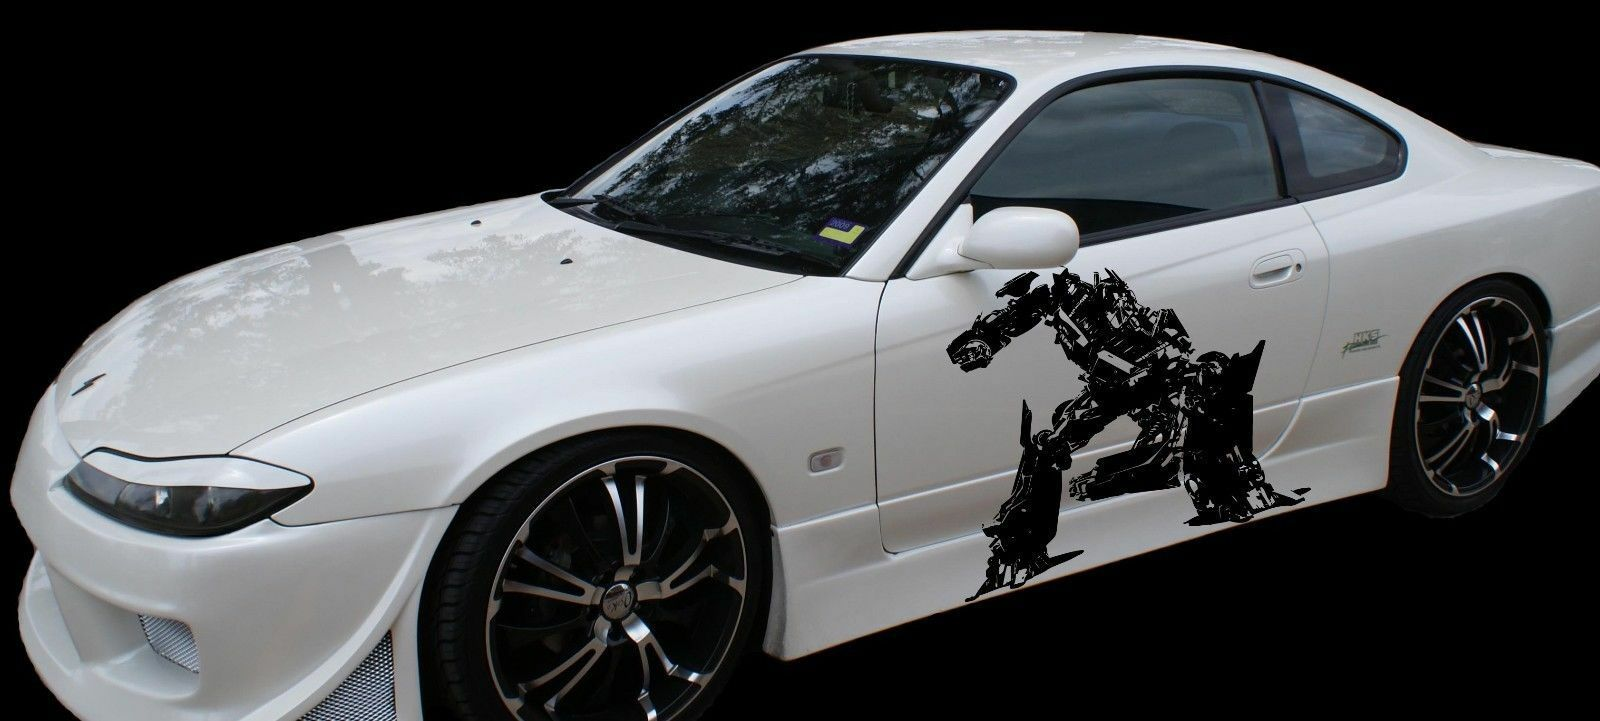 Car stickers design images - Transformer Car Sticker